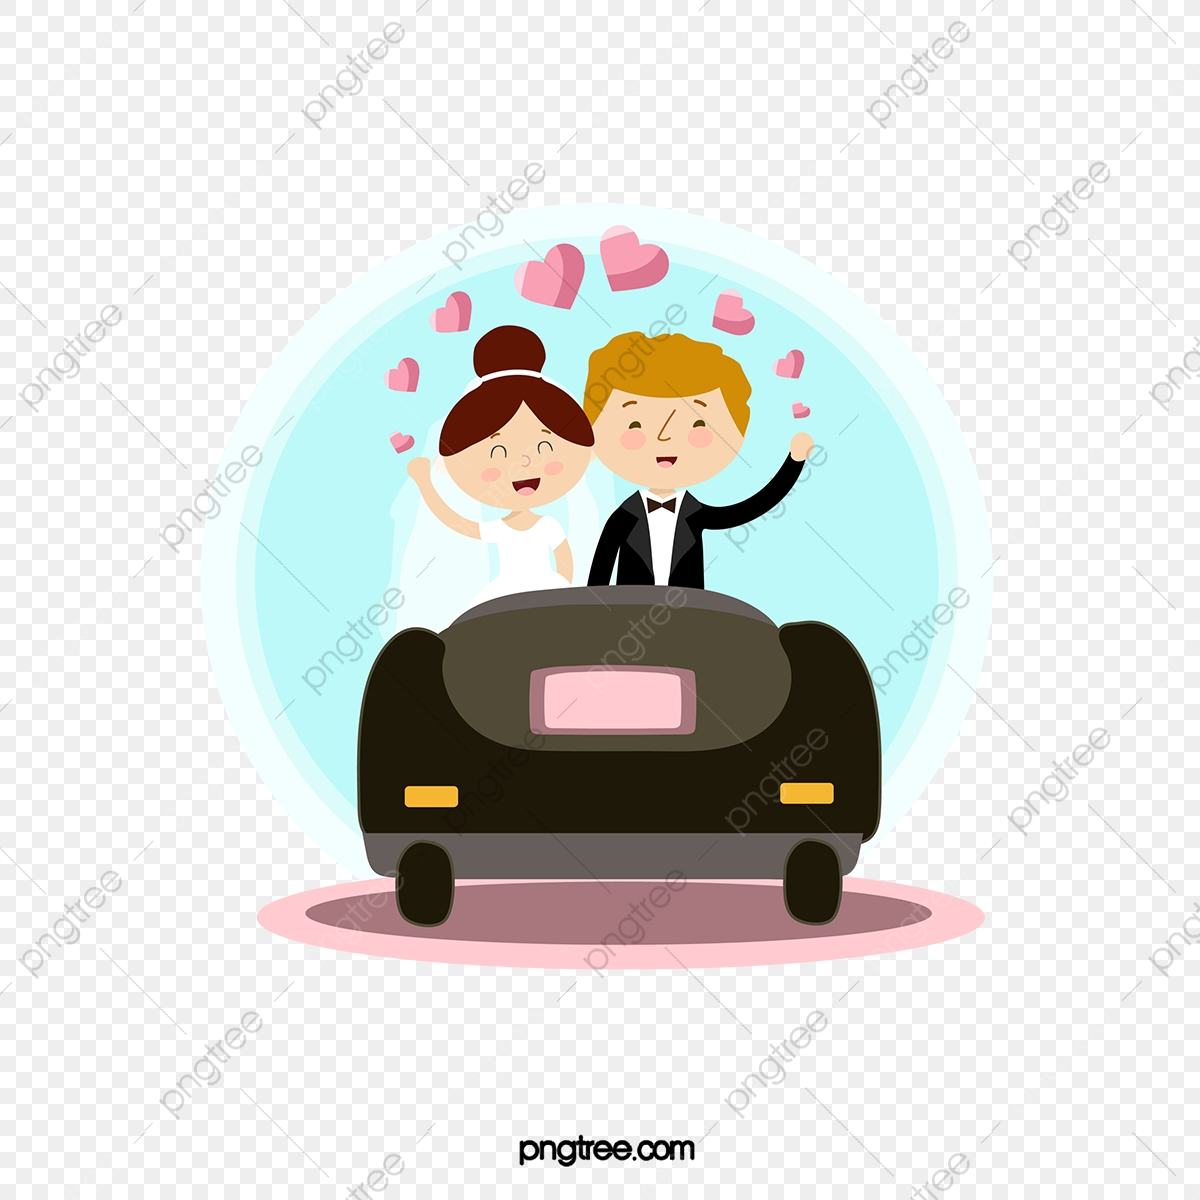 iCLIPART - Clip art Illustration of Newlyweds Resting on a Couch | Clip art,  Royalty free clipart, Free clipart images